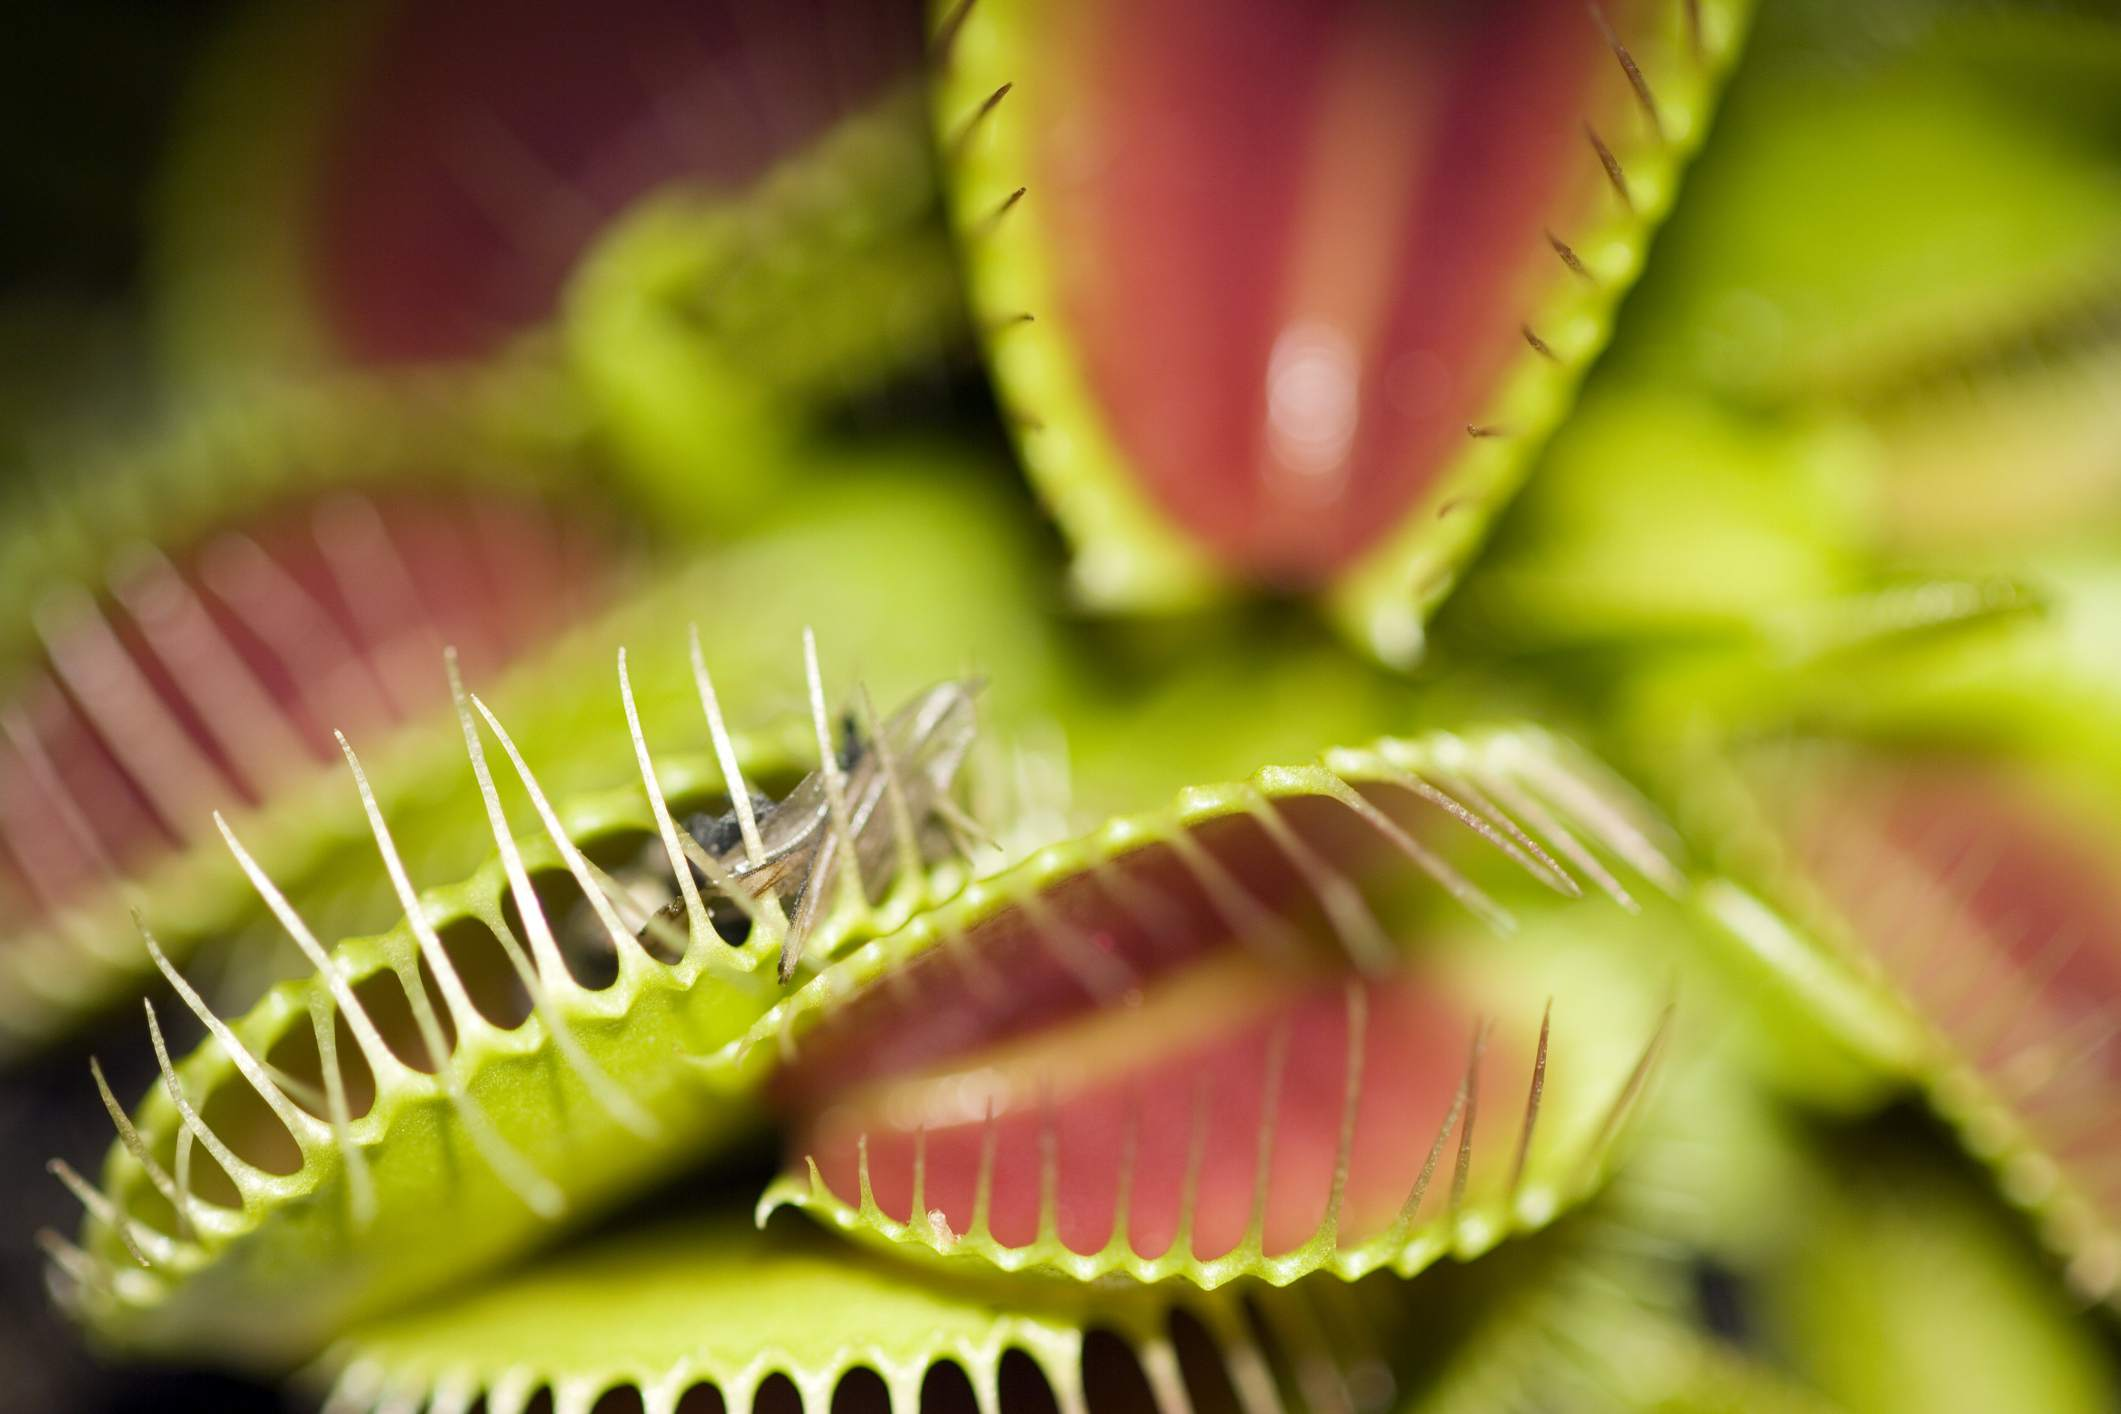 12 Plants That Eat Animals And How They Do It Flytrap Robots Can Hunt Catch Bugs For Meals Getty Images